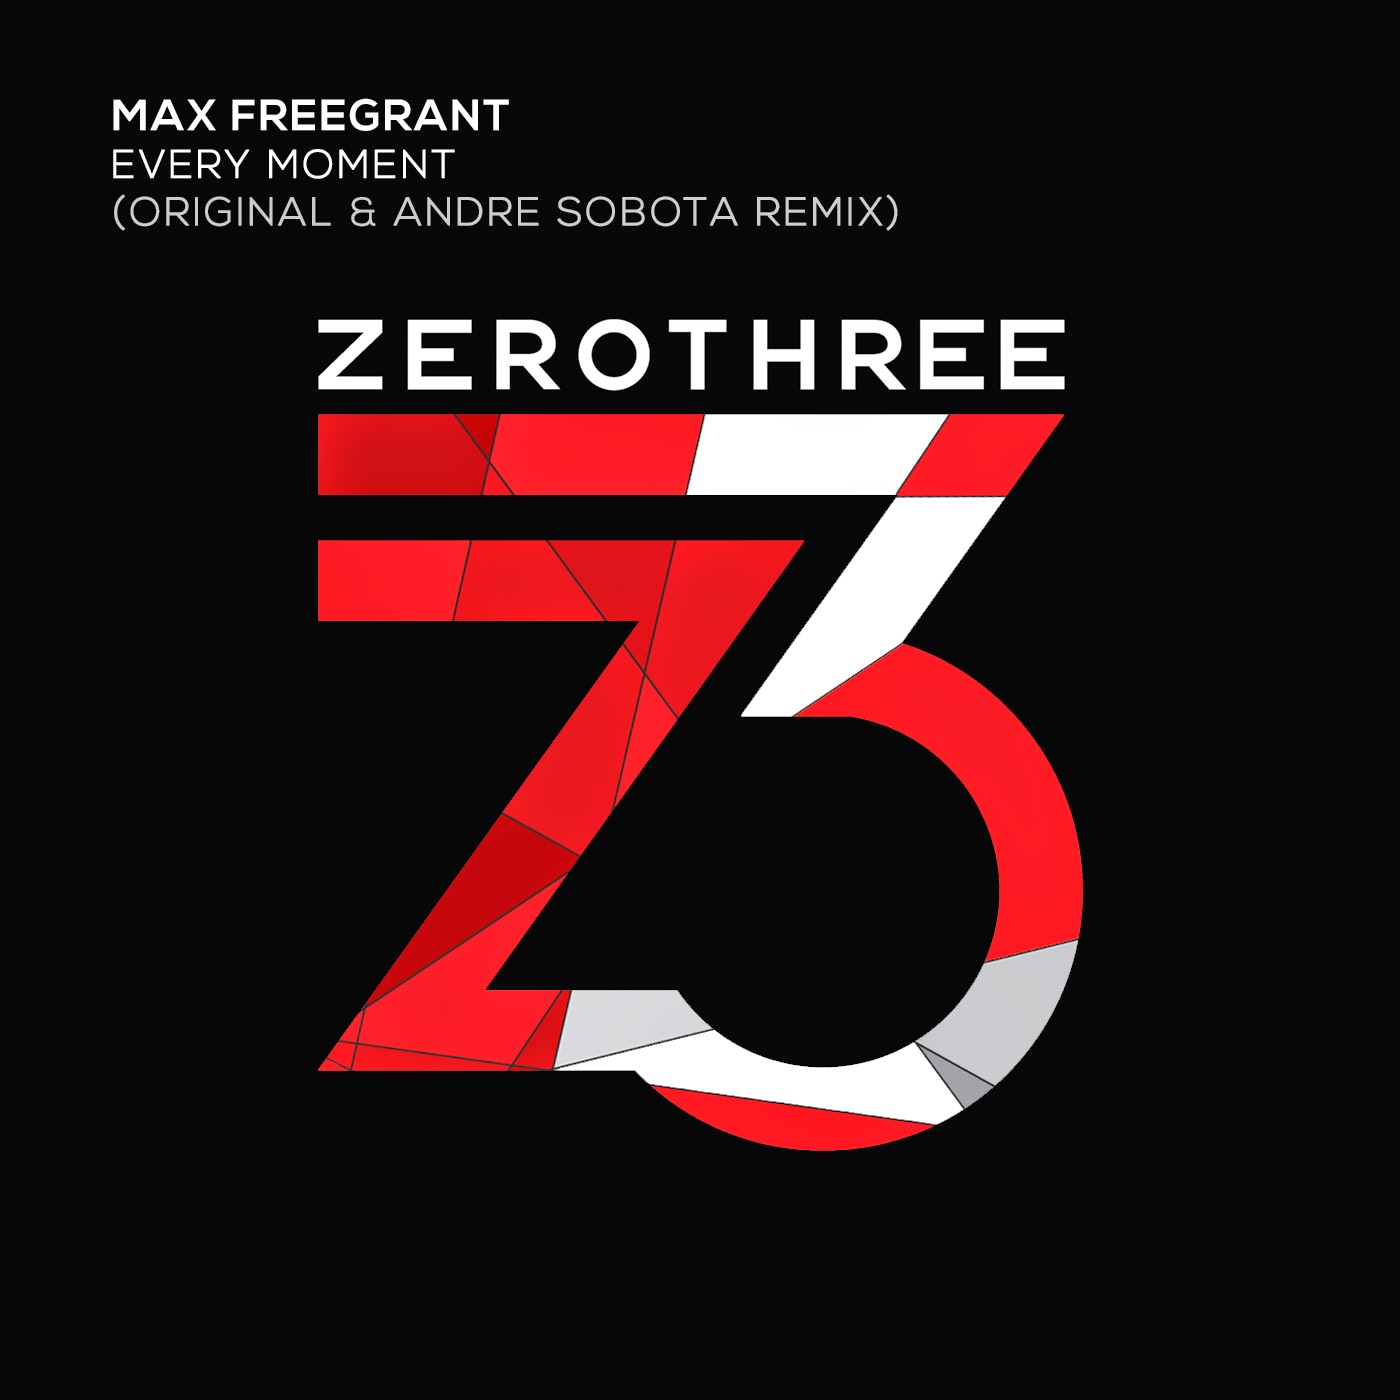 Max Freegrant Every Moment Original & Andre Sobota Remix